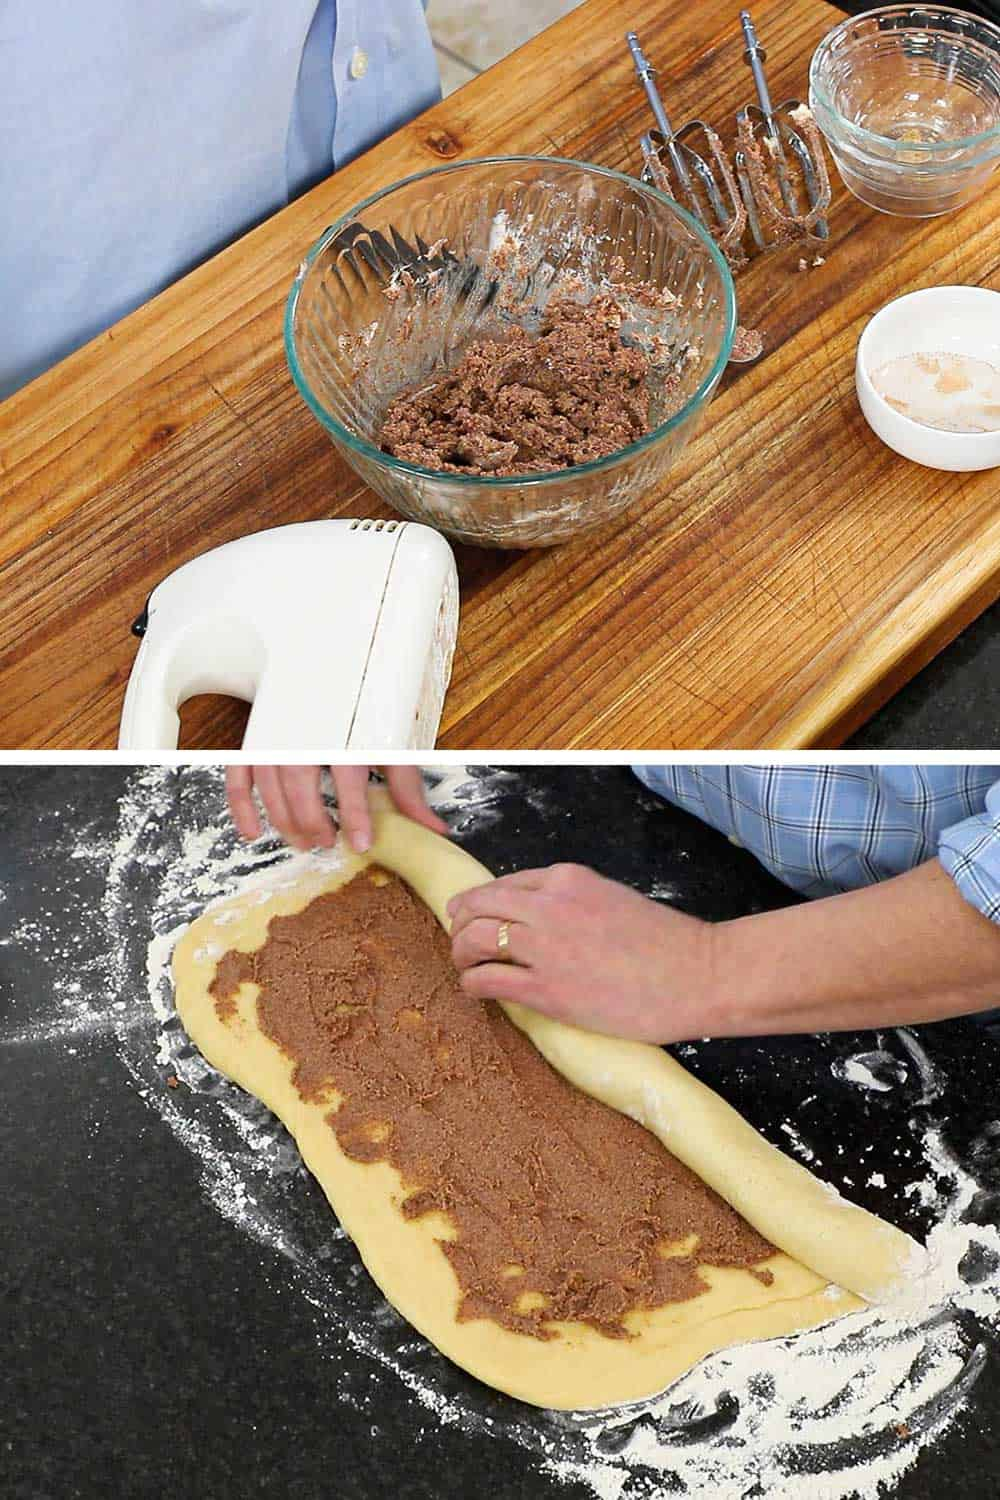 A bowl on a cutting board filled with softened butter that has been mixed with sugar and cinnamon, and then that mixture spread on dough that is being rolled up.